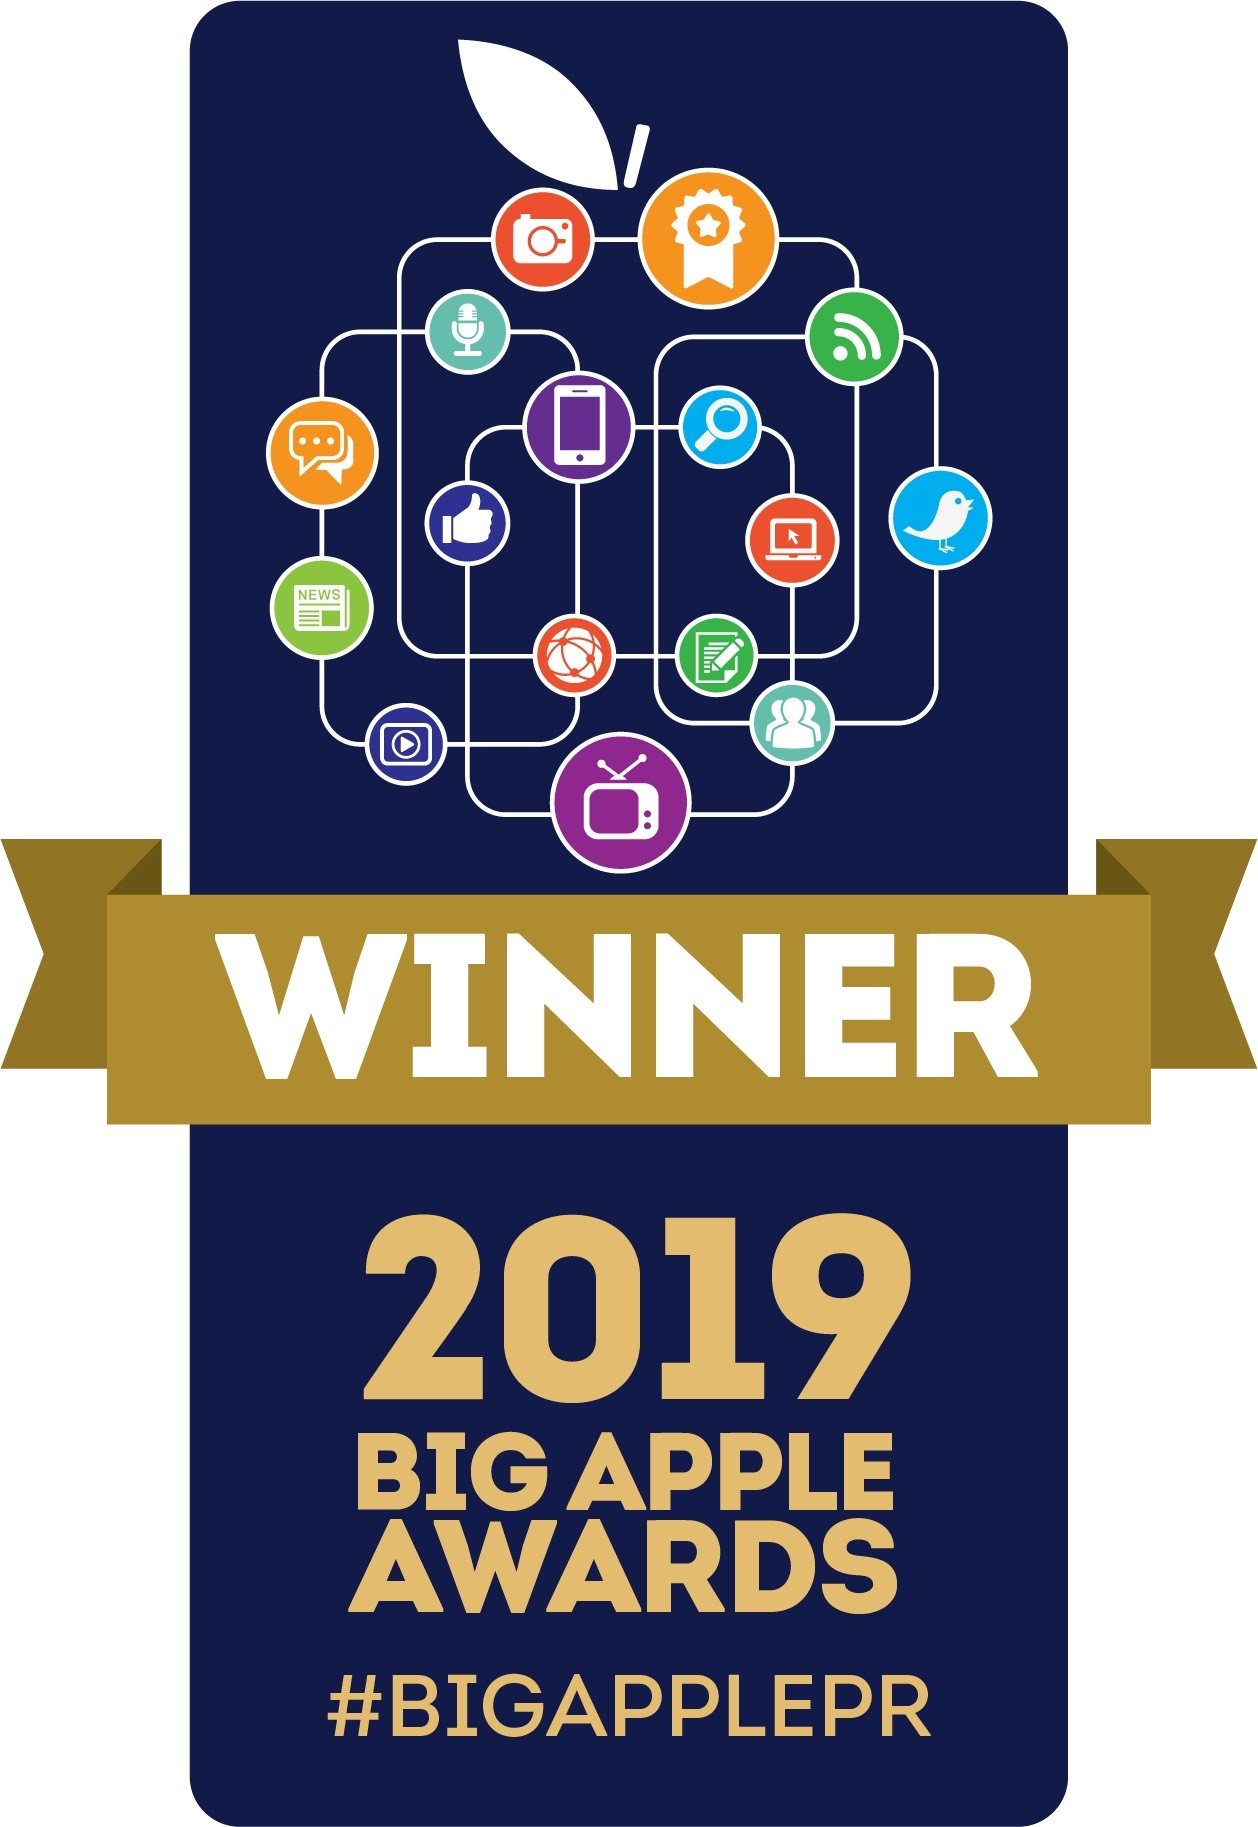 2019 Big Apple Awards badge